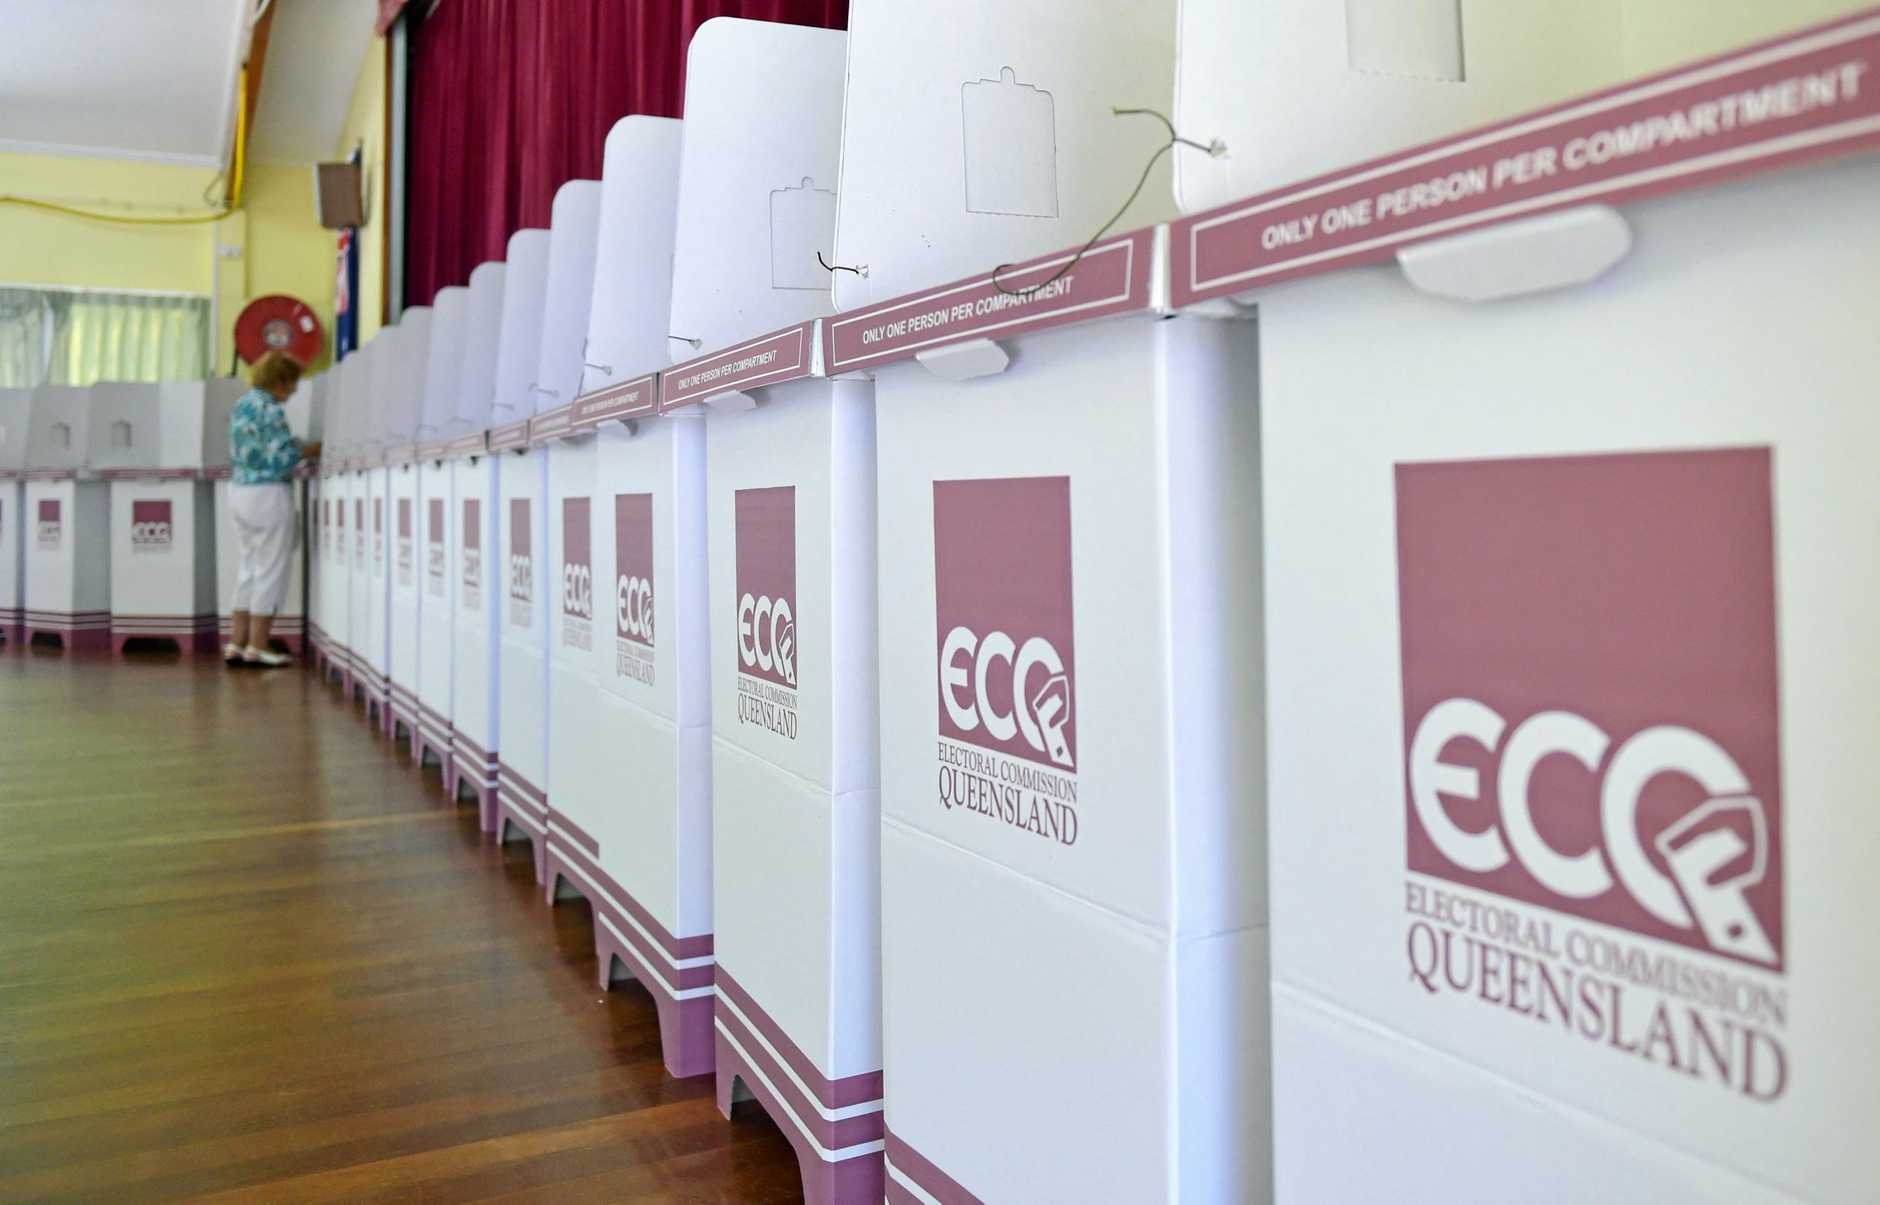 Queensland state election day at the polling booth at the CCSA Hall in Nutley Street, Caloundra. Photo: Brett Wortman / Sunshine Coast Daily